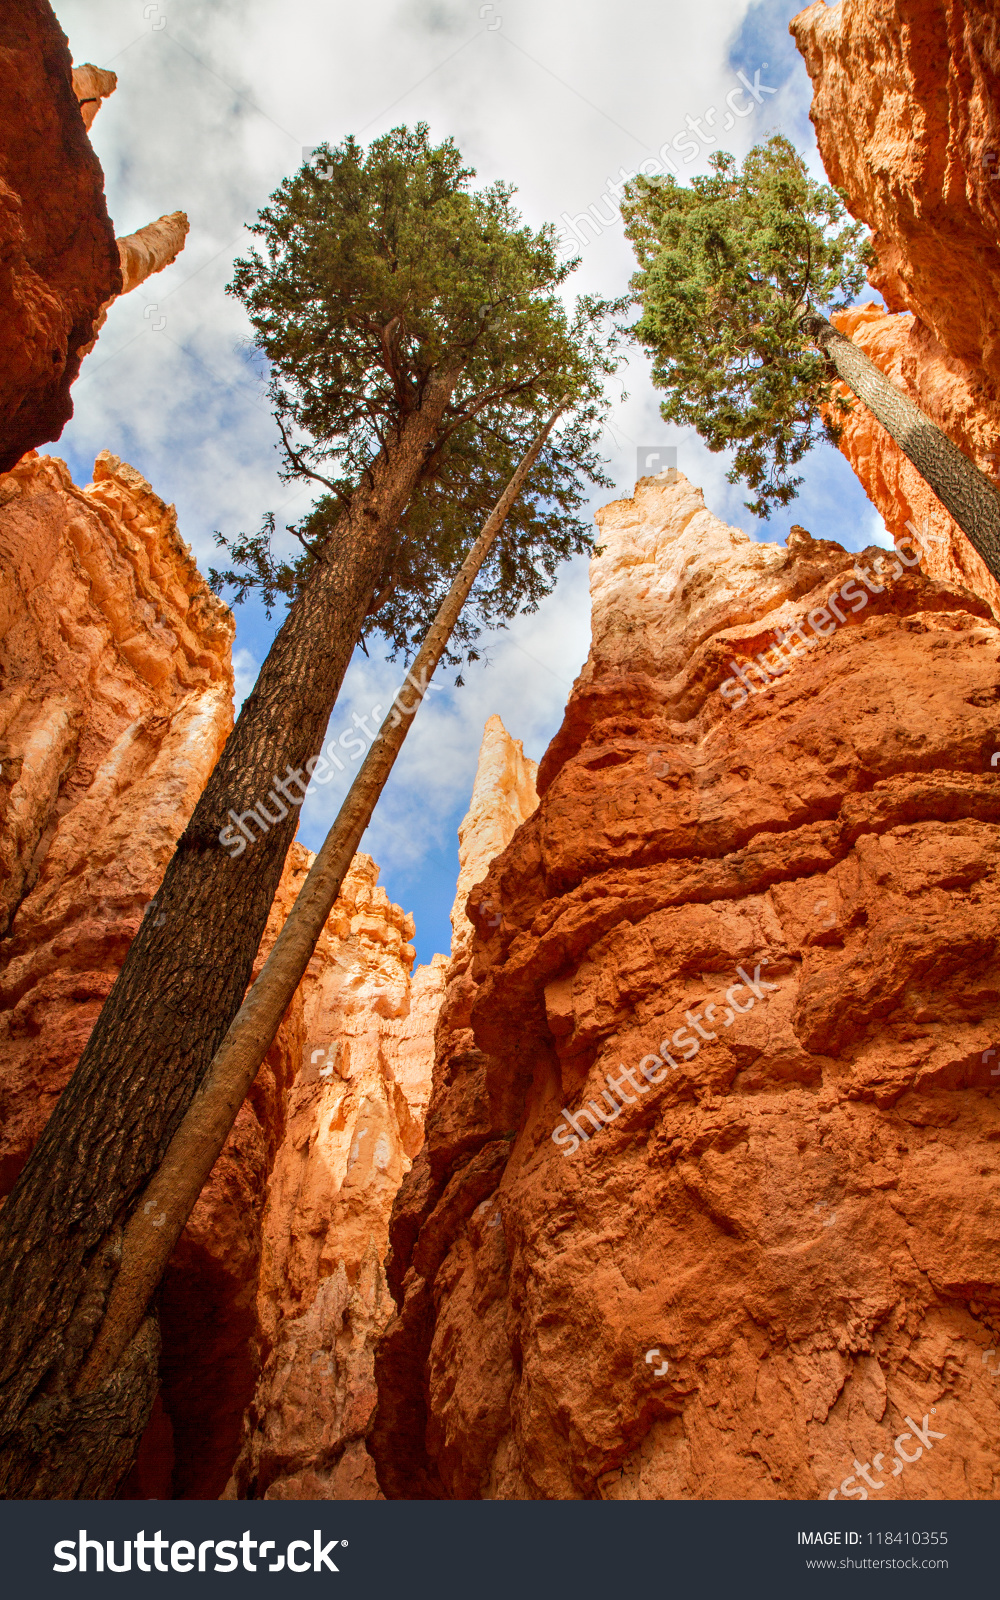 Pine Trees Bryce Canyon National Park Stock Photo 118410355.